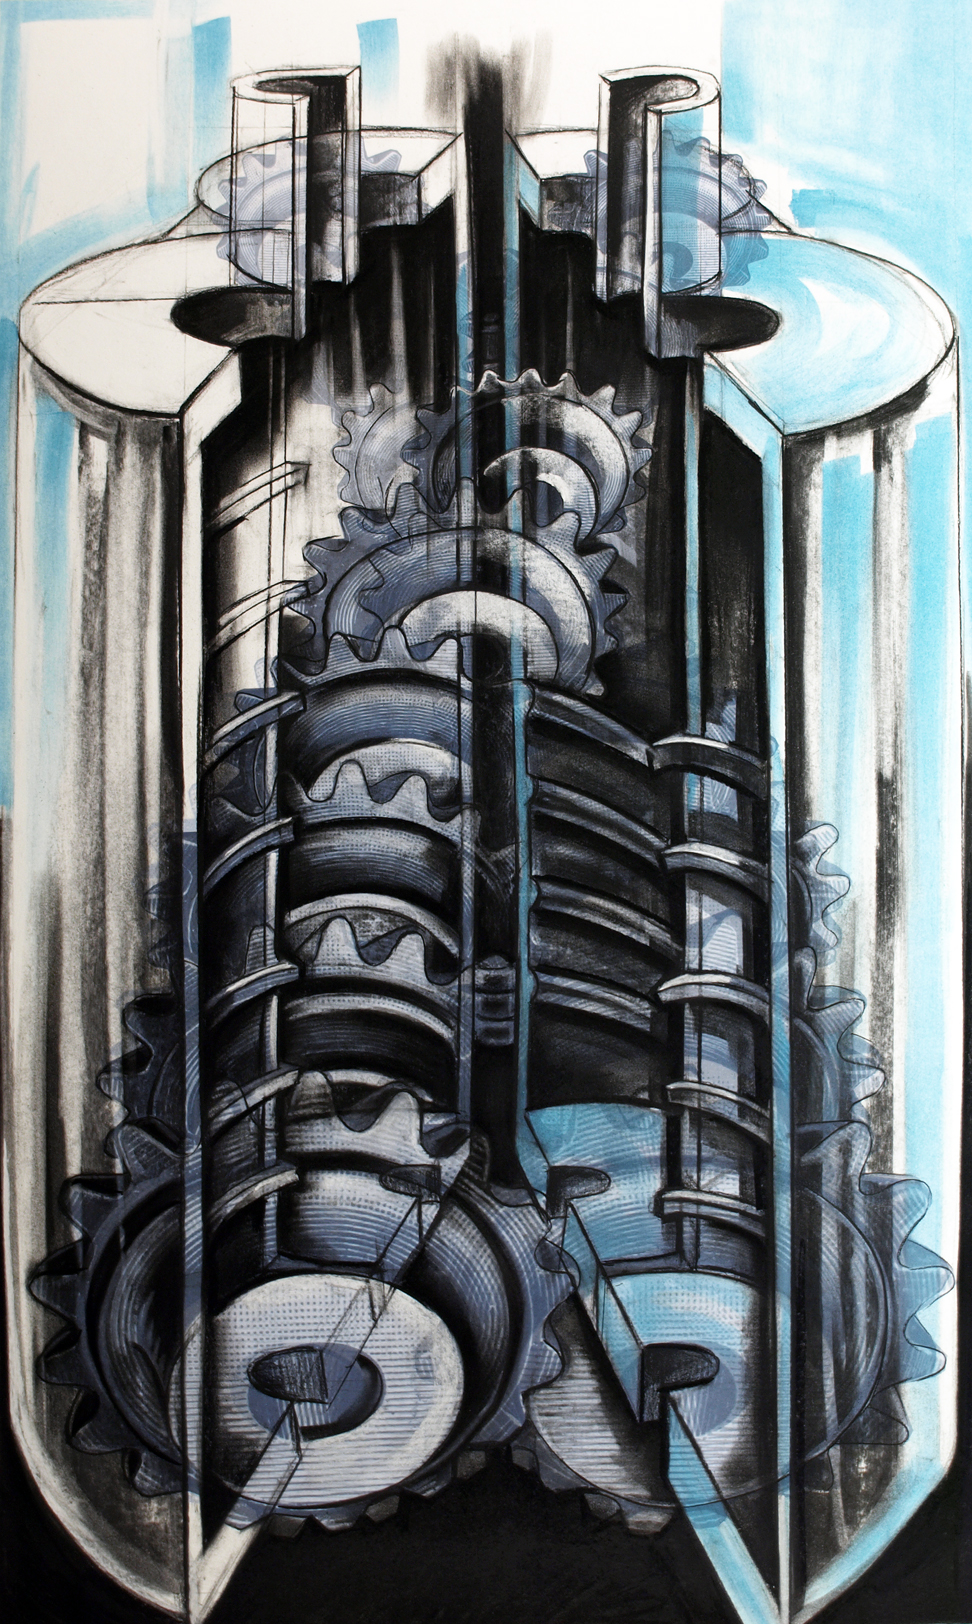 Enterprising Machines,  2015, Charcoal, pastel and digital print, 46 x 29 inches